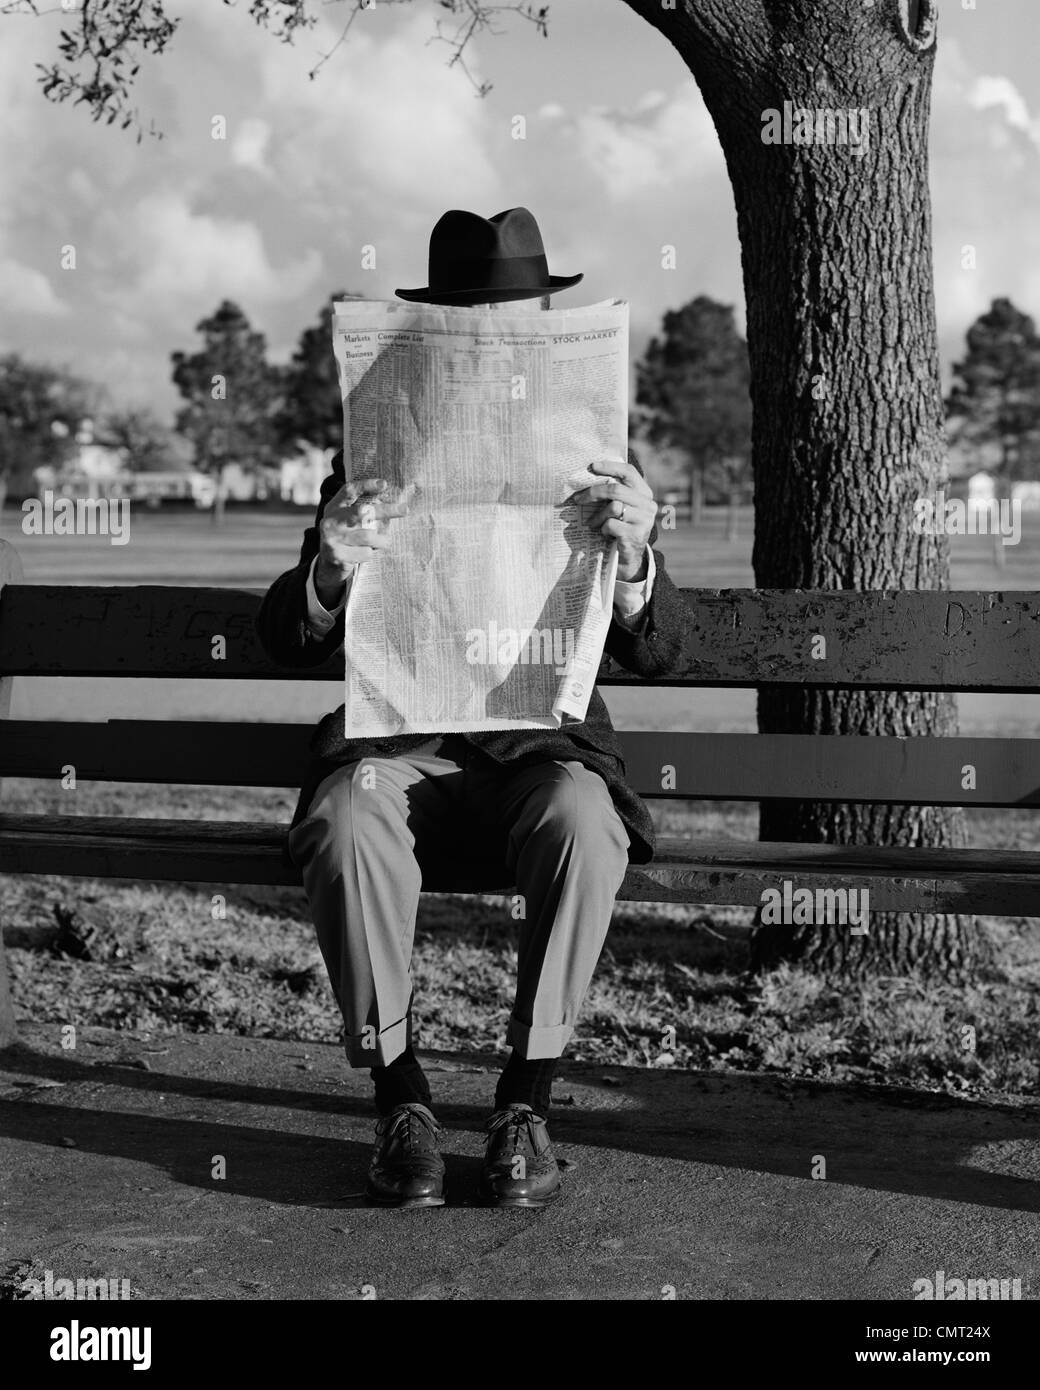 1960s humor portrait man wearing hat sitting on park bench reading